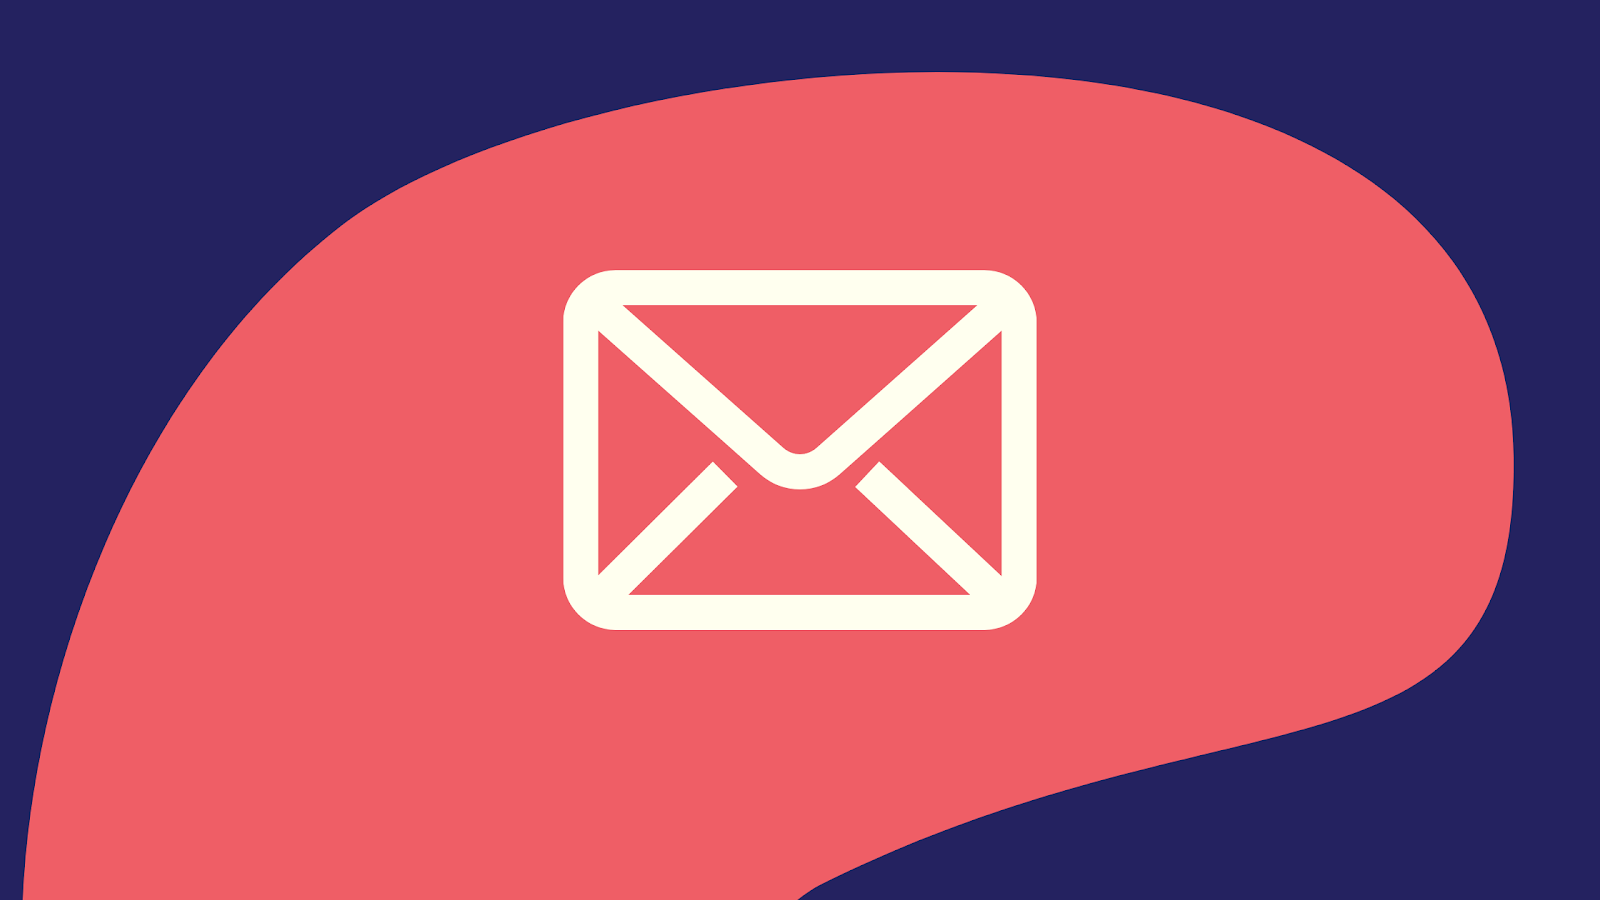 Graphic of an email icon against and pink and blue background.